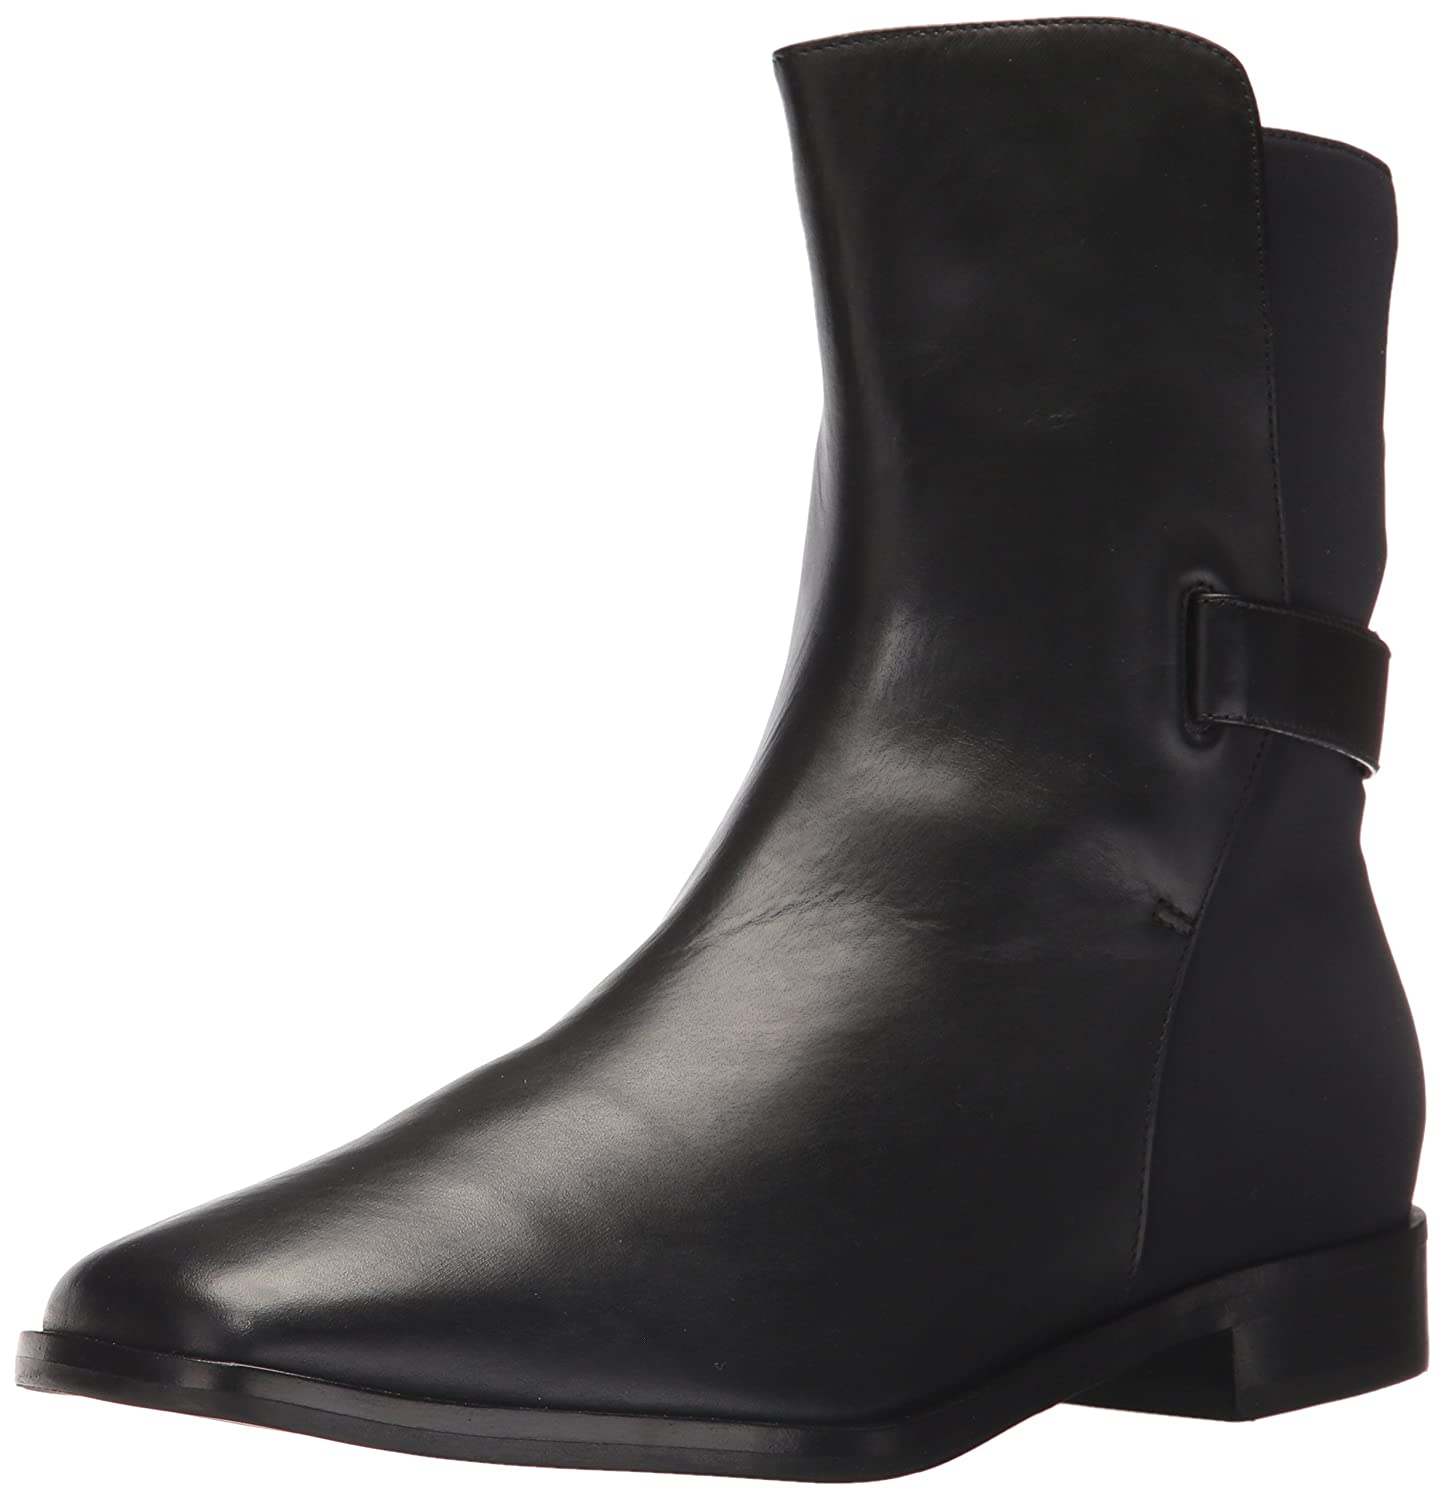 Via Spiga Women's Vaughan B(M) Ankle Boot B06XGTMR48 8.5 B(M) Vaughan US|Black Leather ad92be